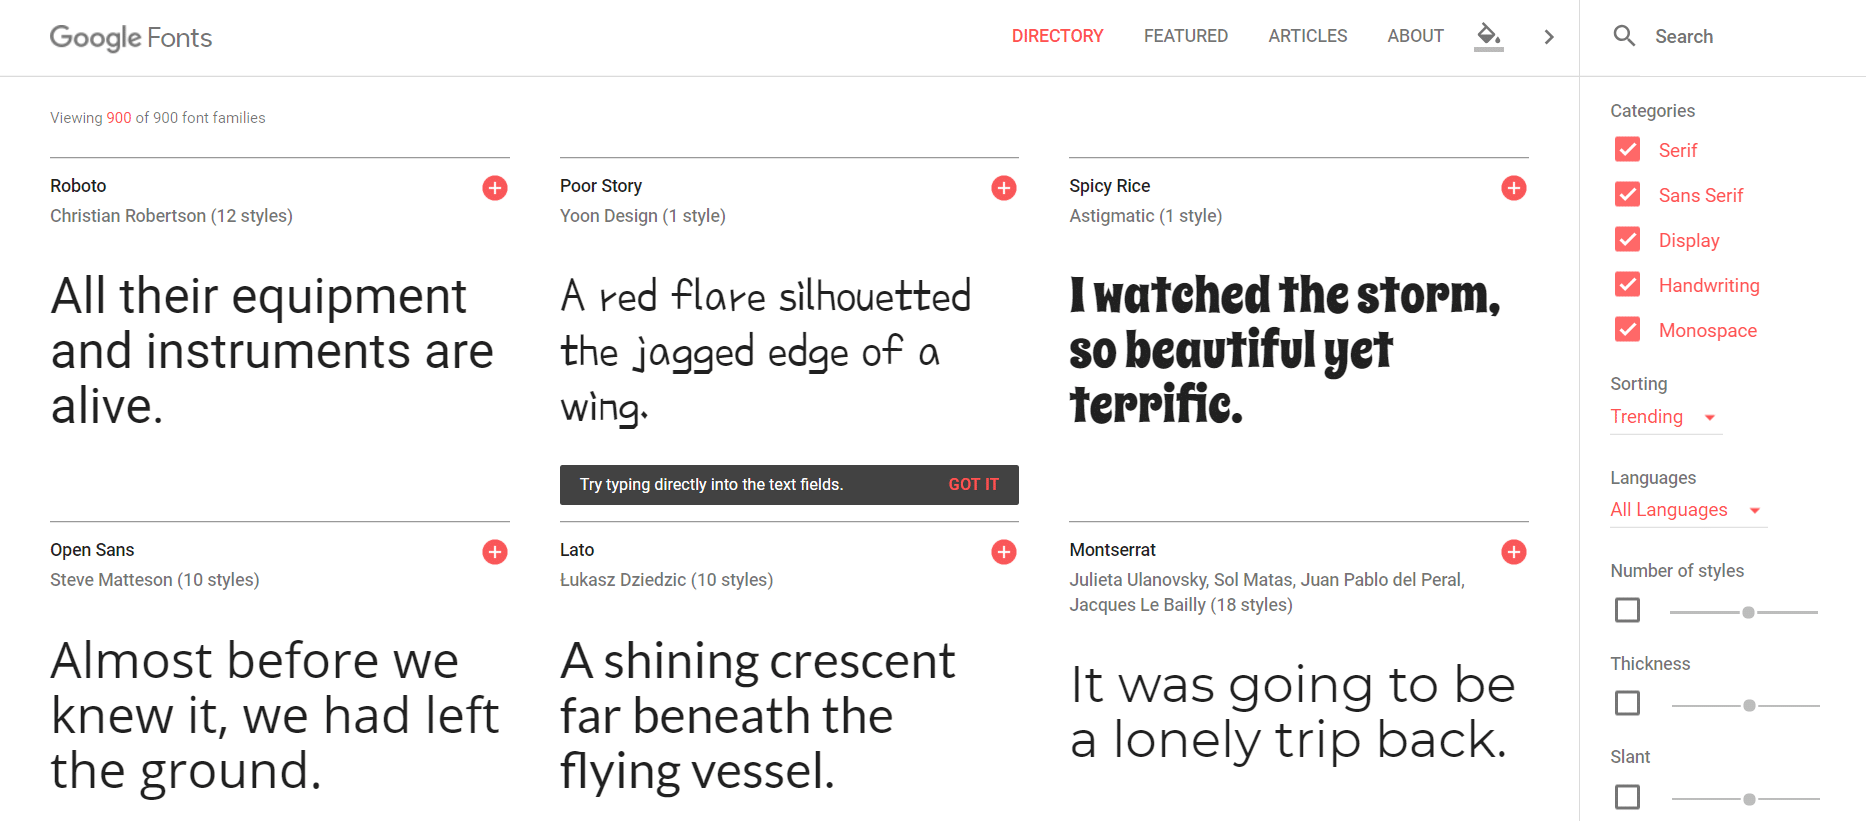 Google Fonts website screenshot